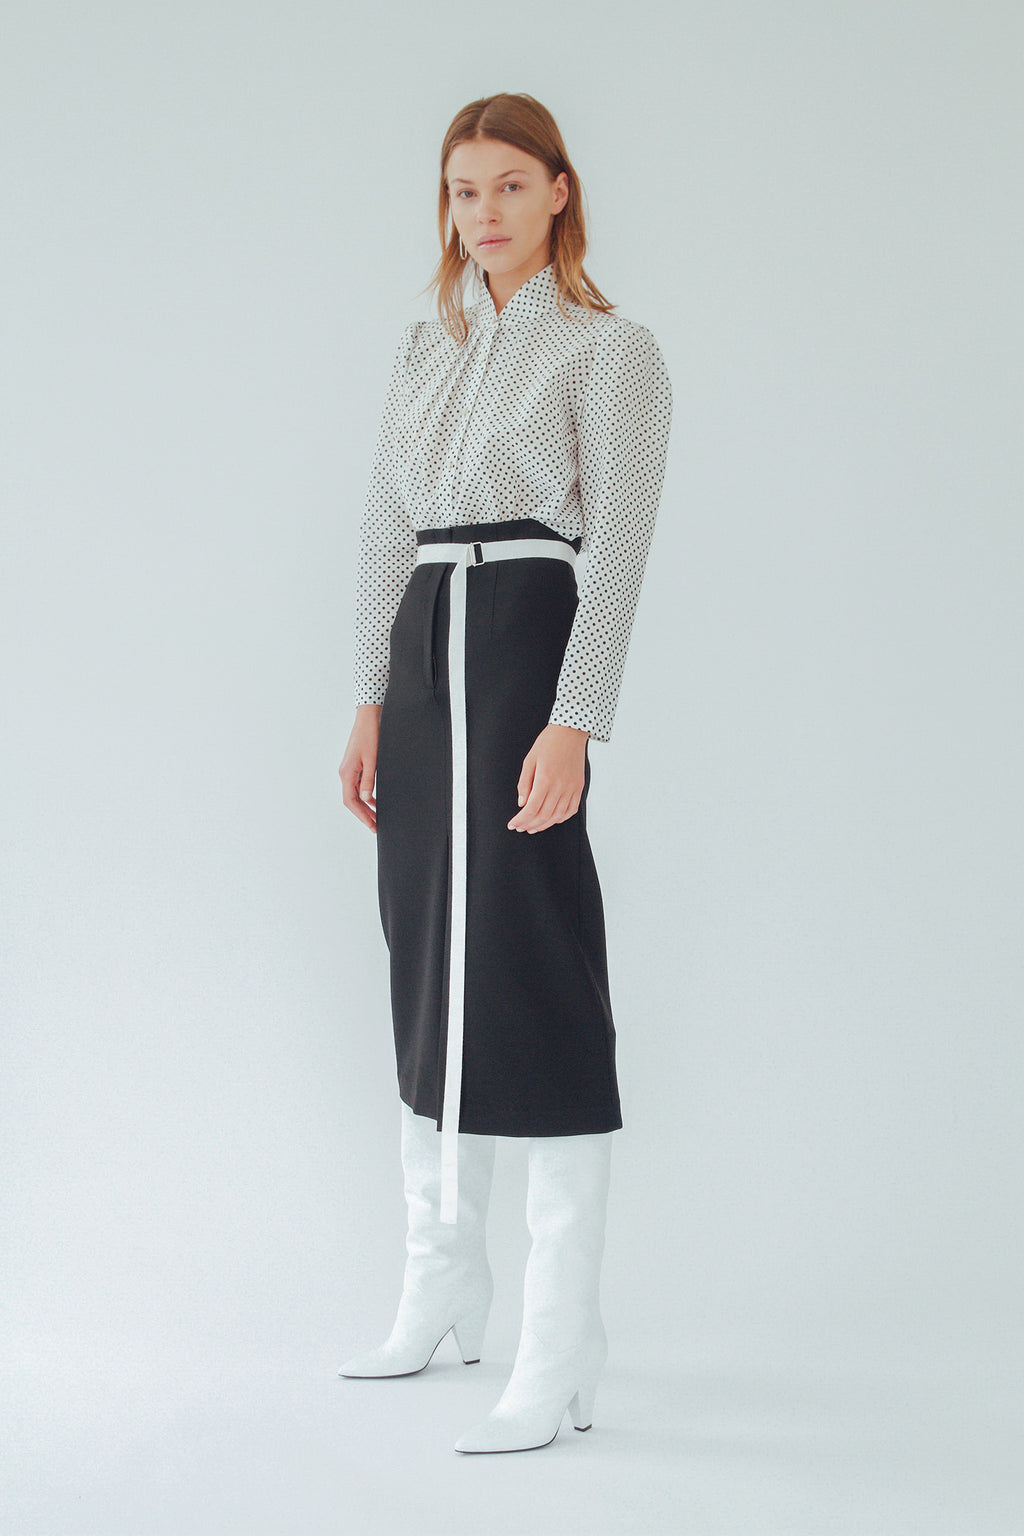 EVA SLIM SKIRT, Skirt - Robert Rodriguez Women's Fashion Collection